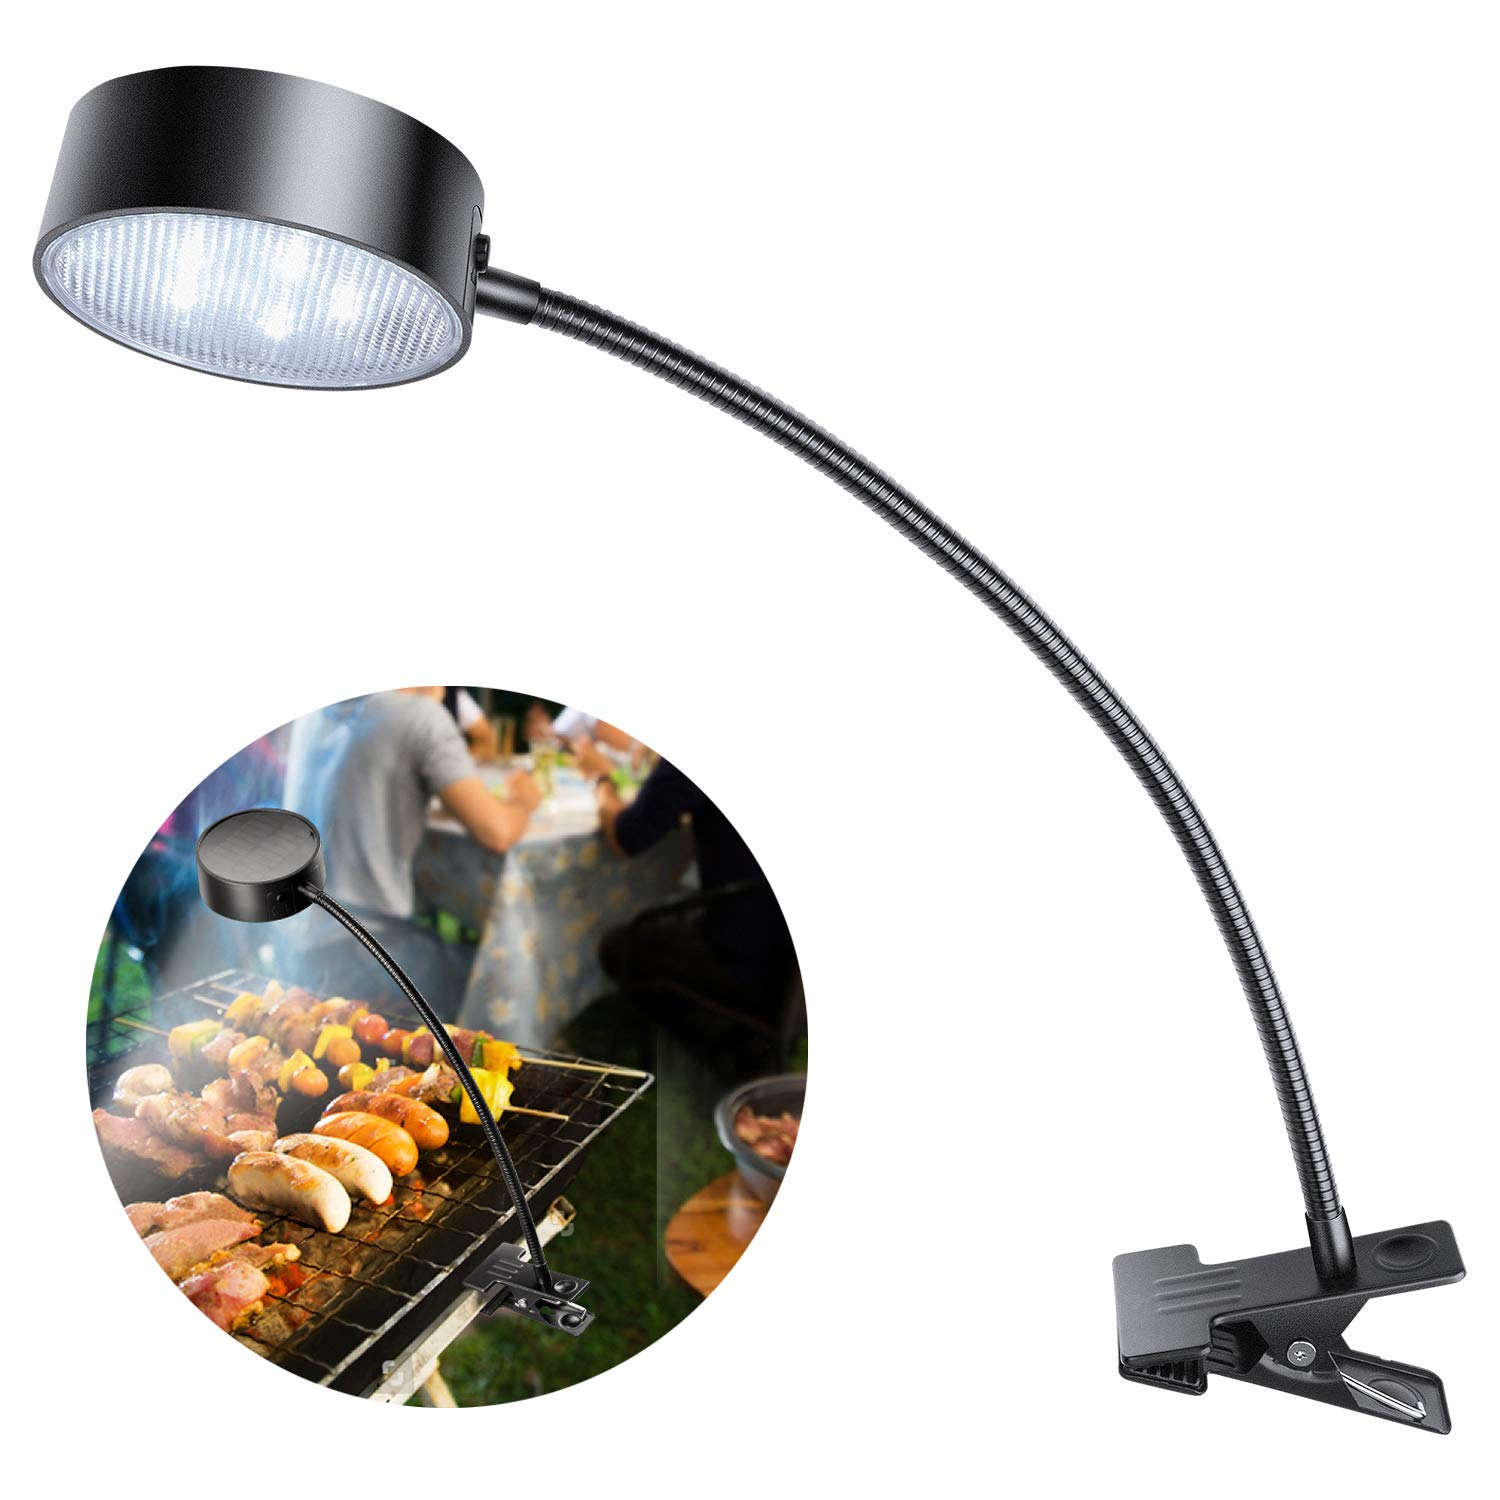 LeiDrail Grill Light LED Solar BBQ Lights Super Bright Wide-Angle Barbecue Lamp Flexible Gooseneck Outdoor Waterproof Anti-Shedding Clip for Charcoal Electric Desk Work Bench